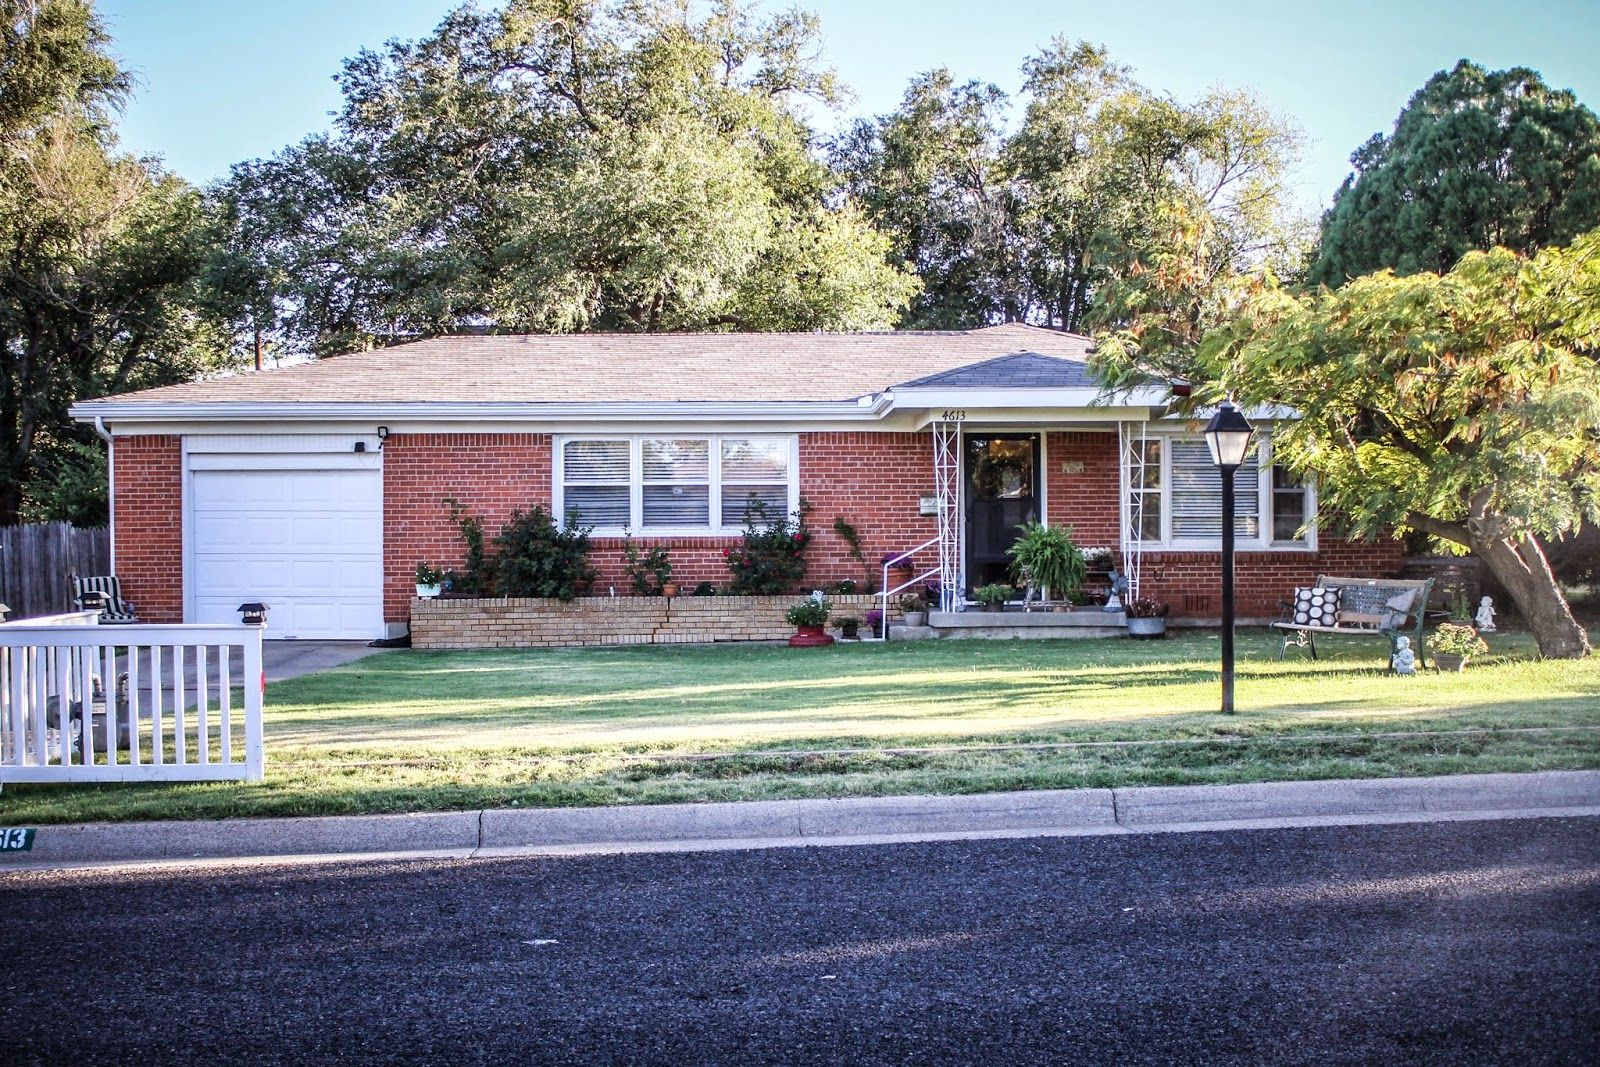 [8+] 2 Bedroom House For Sale At Amarillo